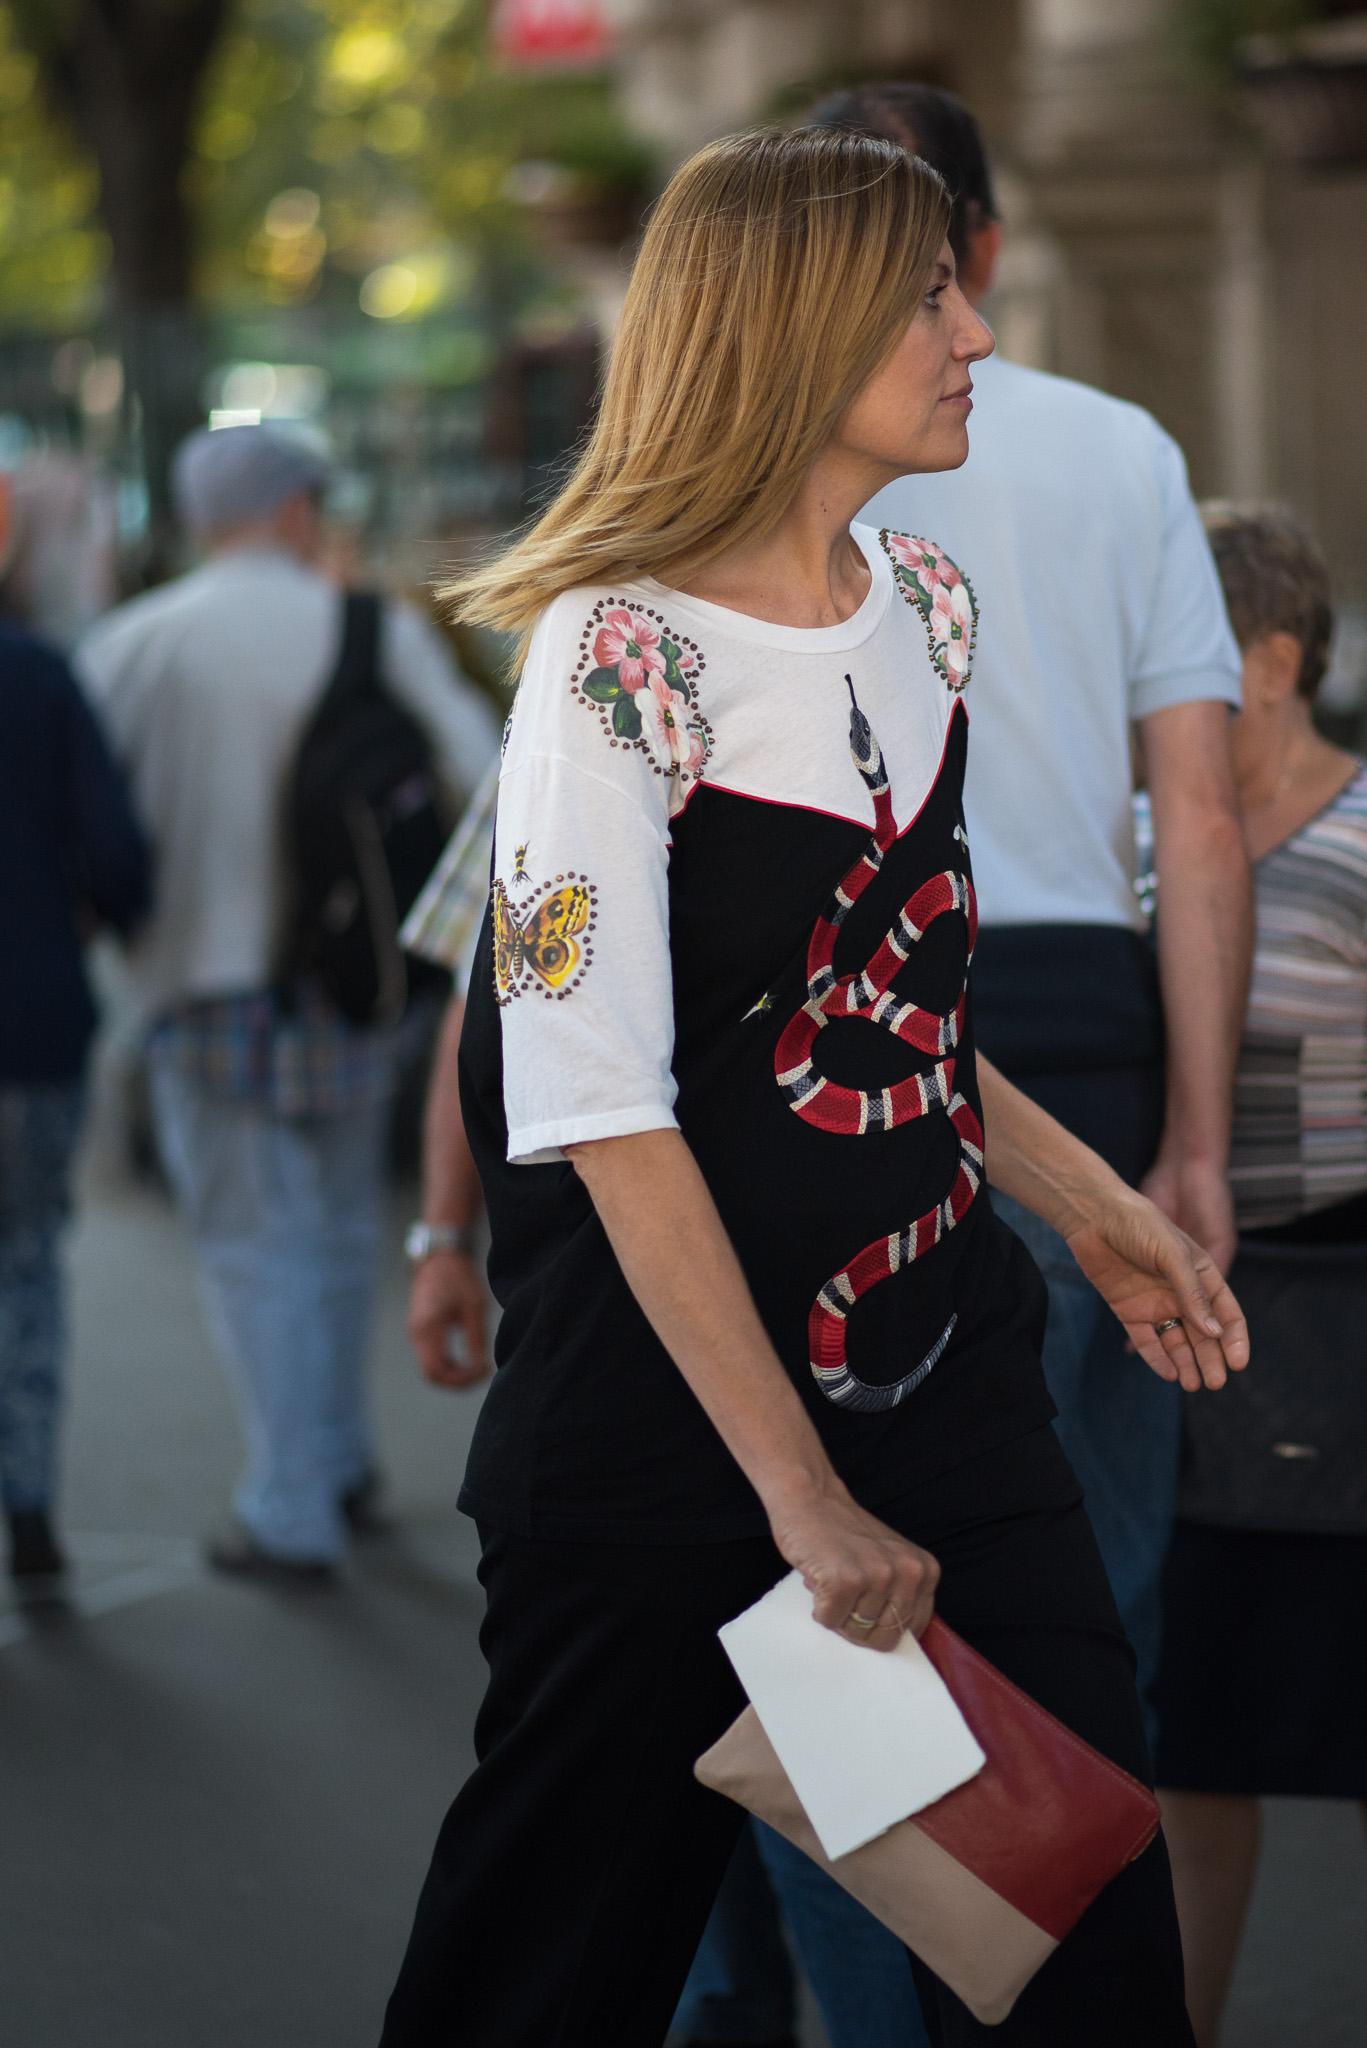 street-style_jil-sander_milan-fashion-week_sept-2016_photography-annika-lagerqvist_www-annikasomething-com-4